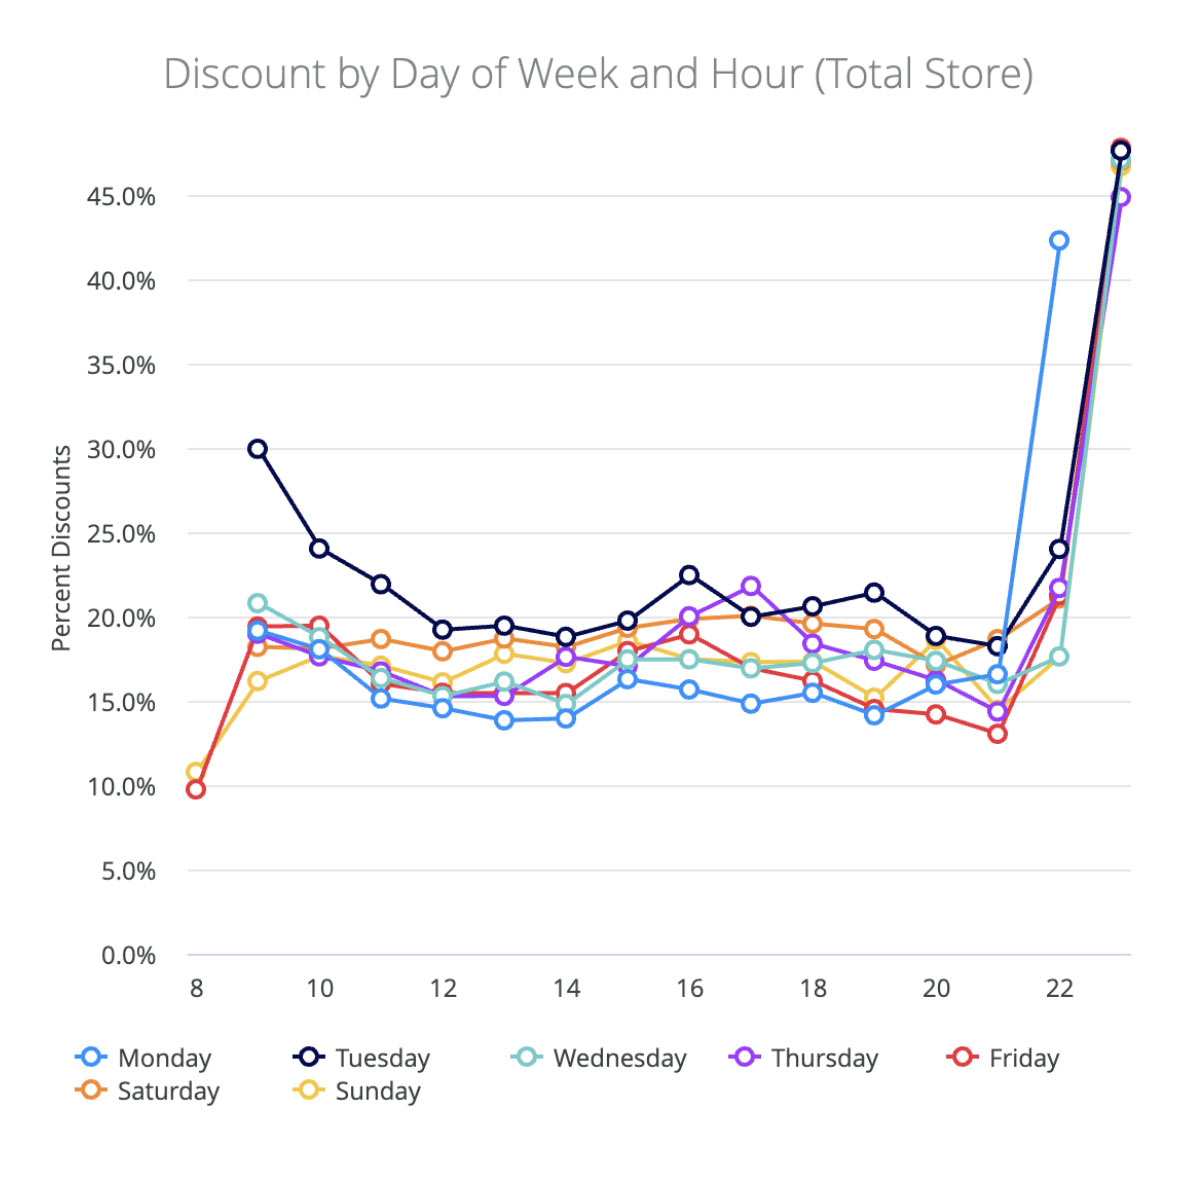 Cannabis discounts by day of week and hour - total store